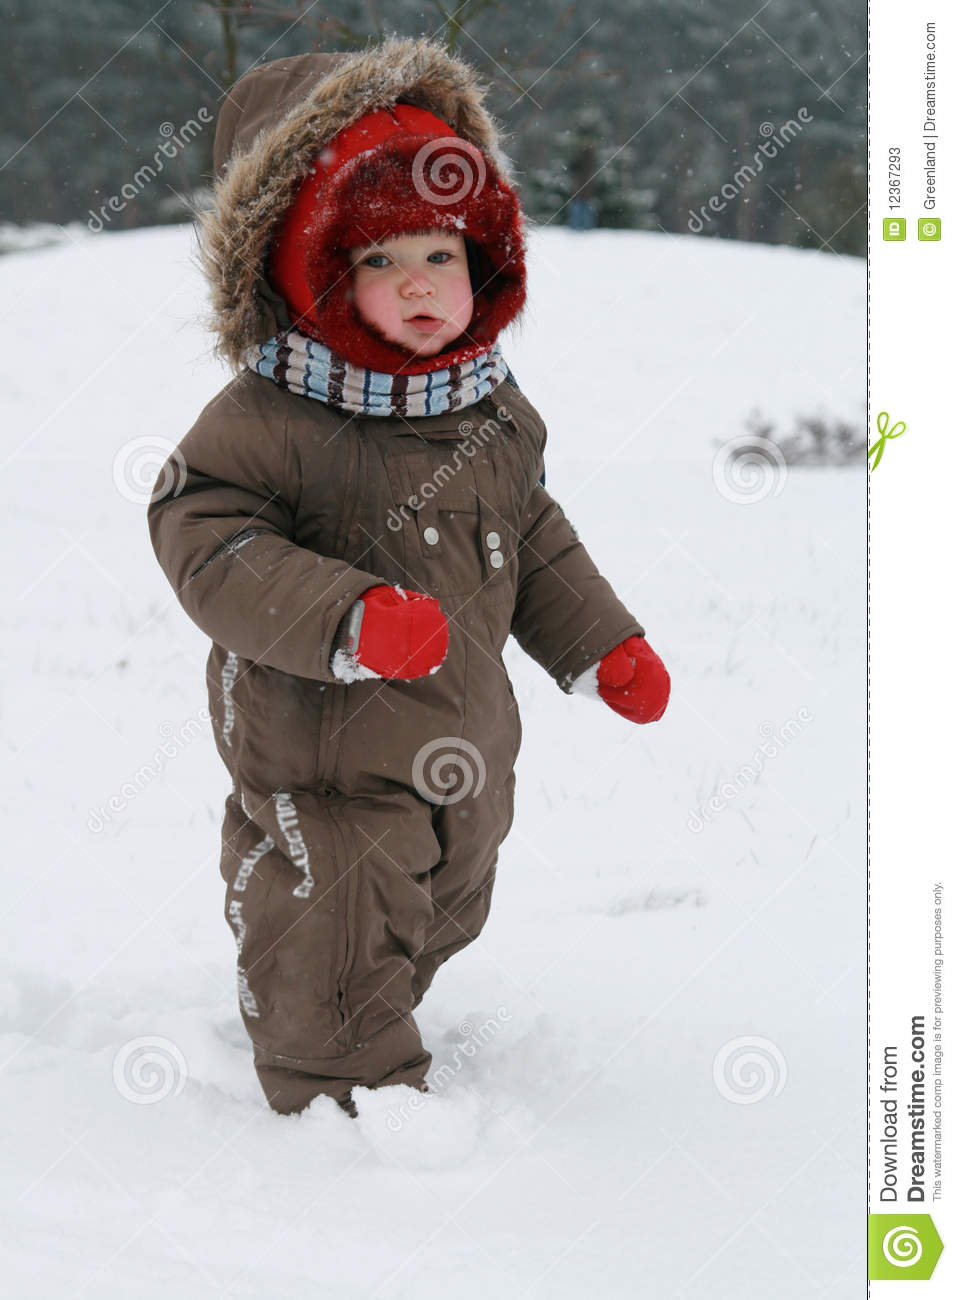 Snow And Ski Clothing Winter Baby Stock Photos - Image: 12367293